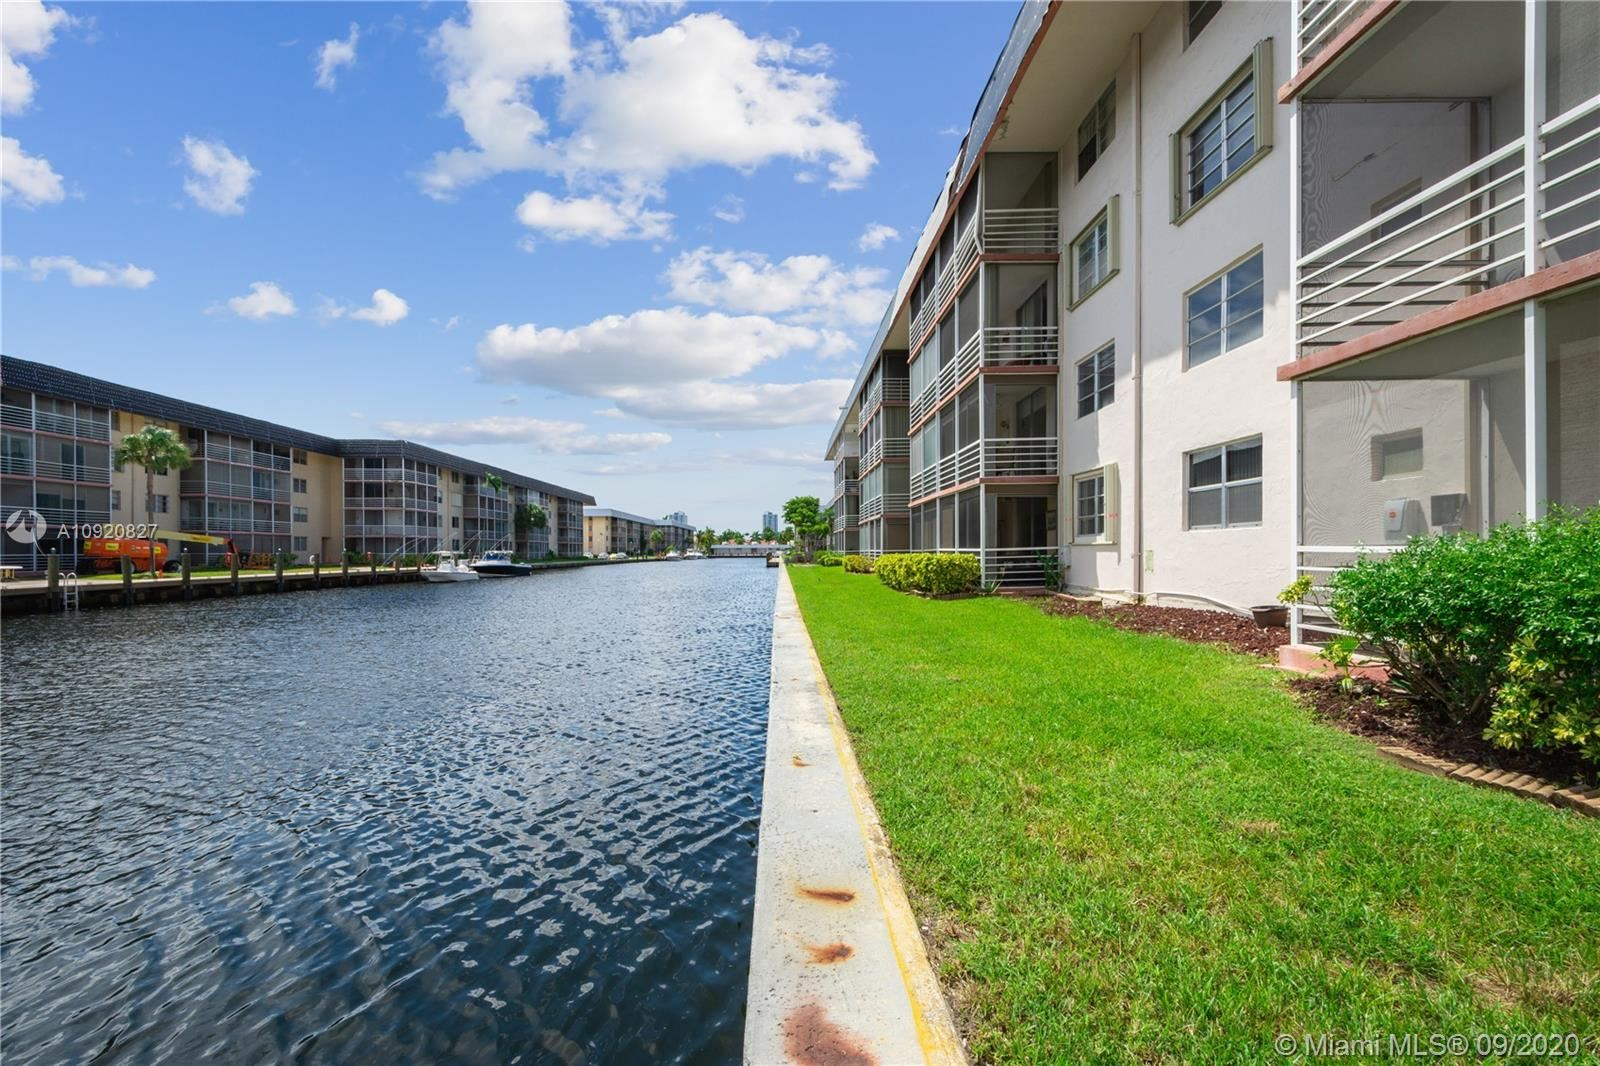 3750 NE 170th St #105, North Miami Beach, FL 33160 - #: A10920827